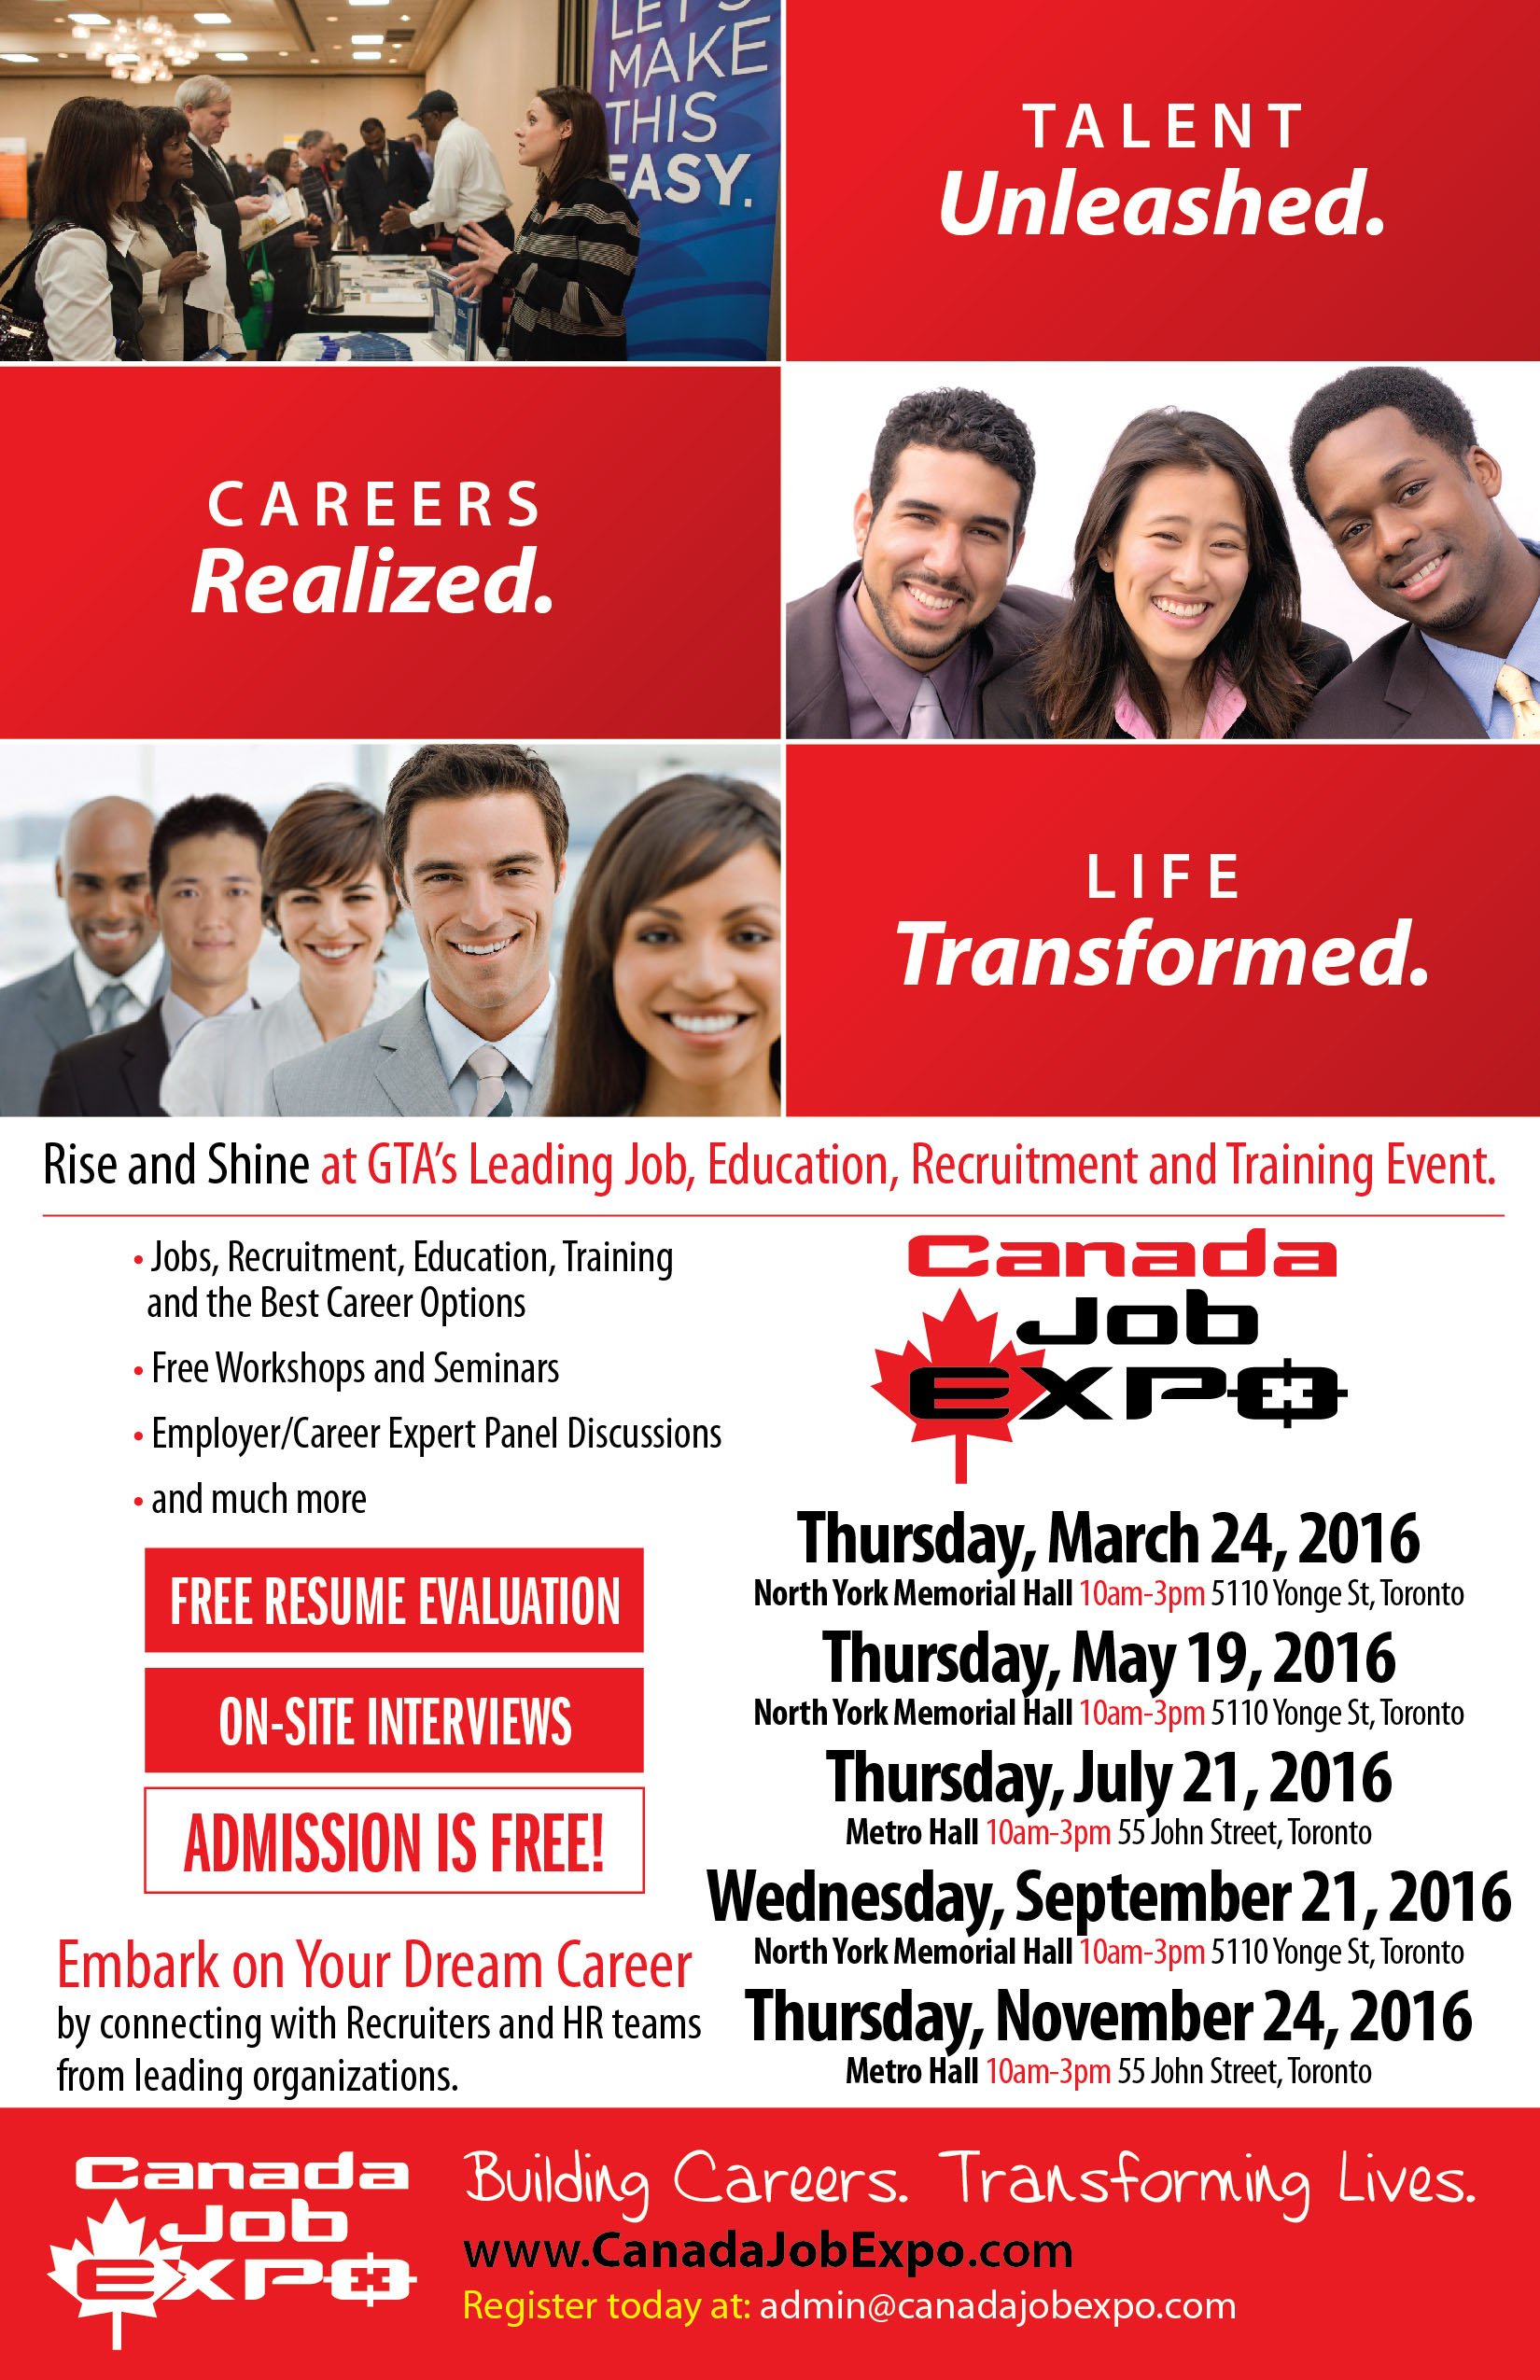 Canada Job Expo 2016 Events